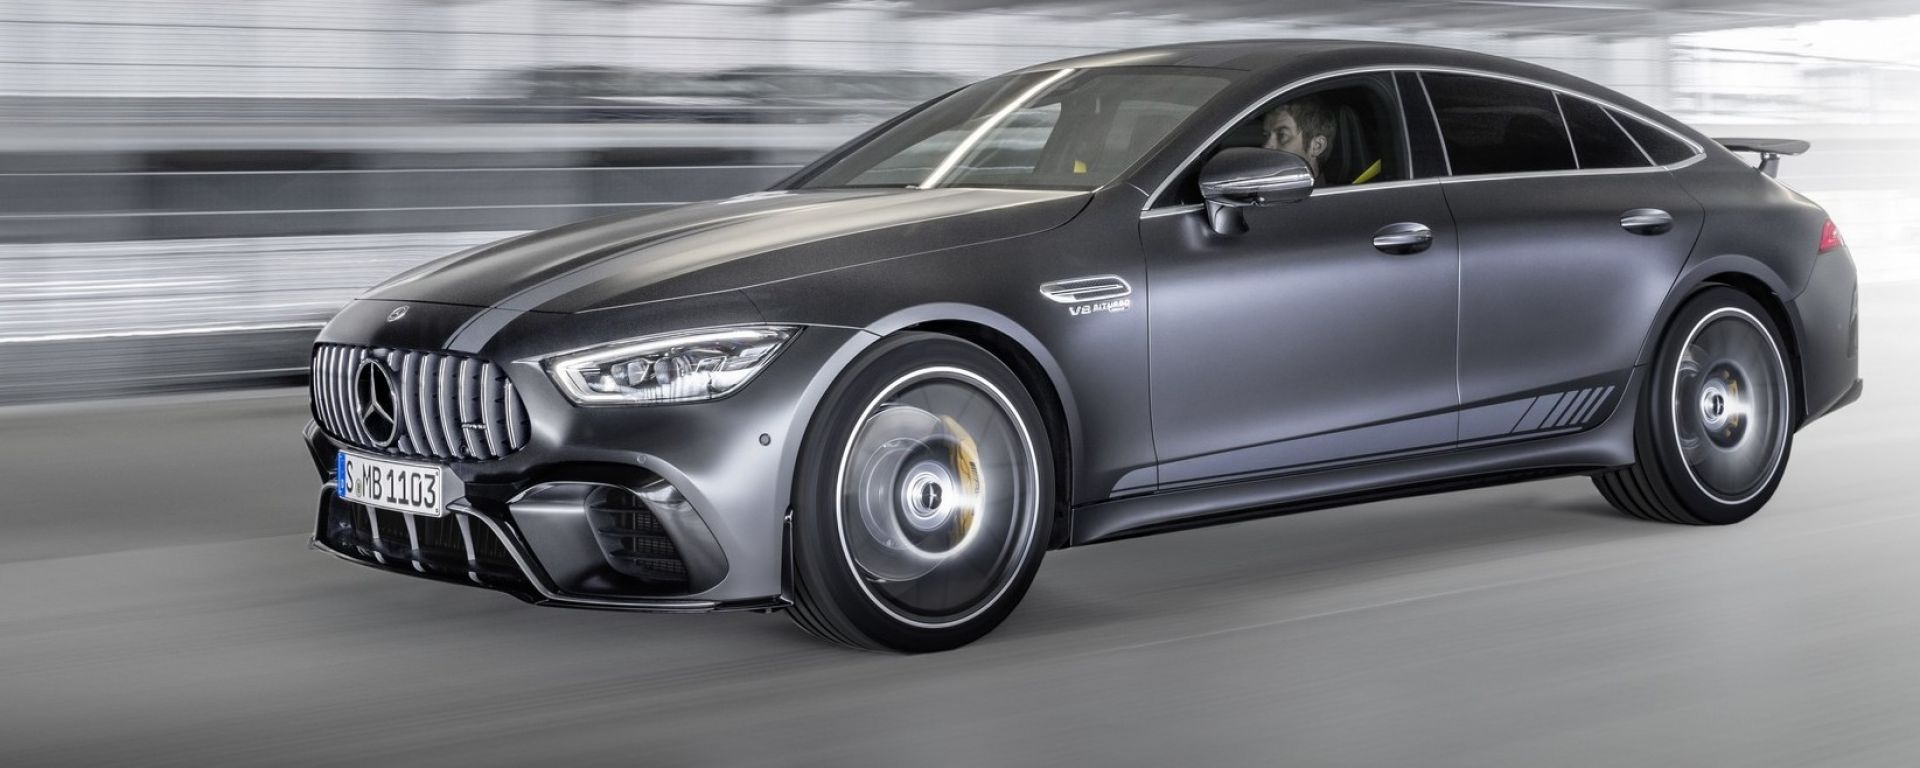 Mercedes AMG GT 4 porte 63 S 4Matic Edition 1